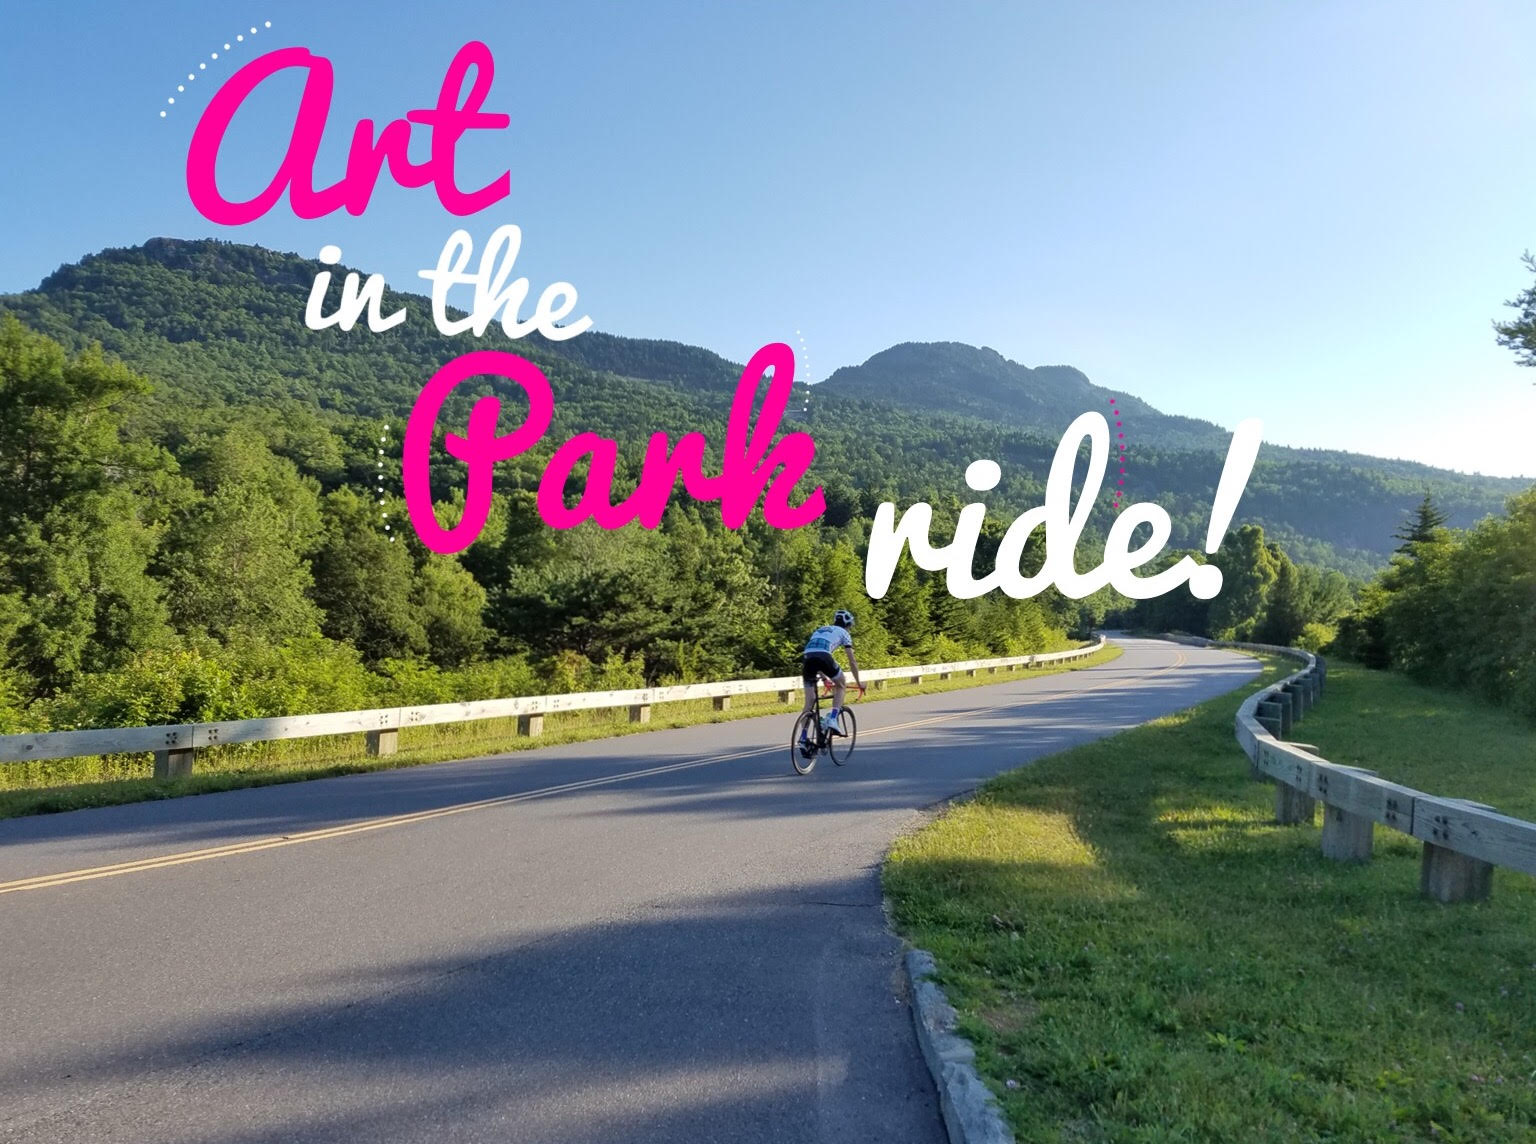 The first Art in the Park ride of the season! What better way to kick off our Art in the Park Ride Series than a classic 38 mile 221/Blue Ridge Parkway loop?!  We will roll from the shop (257 SUNSET DRIVE) at 10am on Sunday, May 21st!  Average pace will be 16-17 mph, but all paces are welcome as we will have multiple regroup points along the ride. We will return to the shop after the ride for refreshments.  Due to Beech Mountain Metric on Saturday, May 20th, the event will be Sunday, May 21st. Join us for Beech Mountain Metric as well, register, here:  http://beechmountainmetric.org/